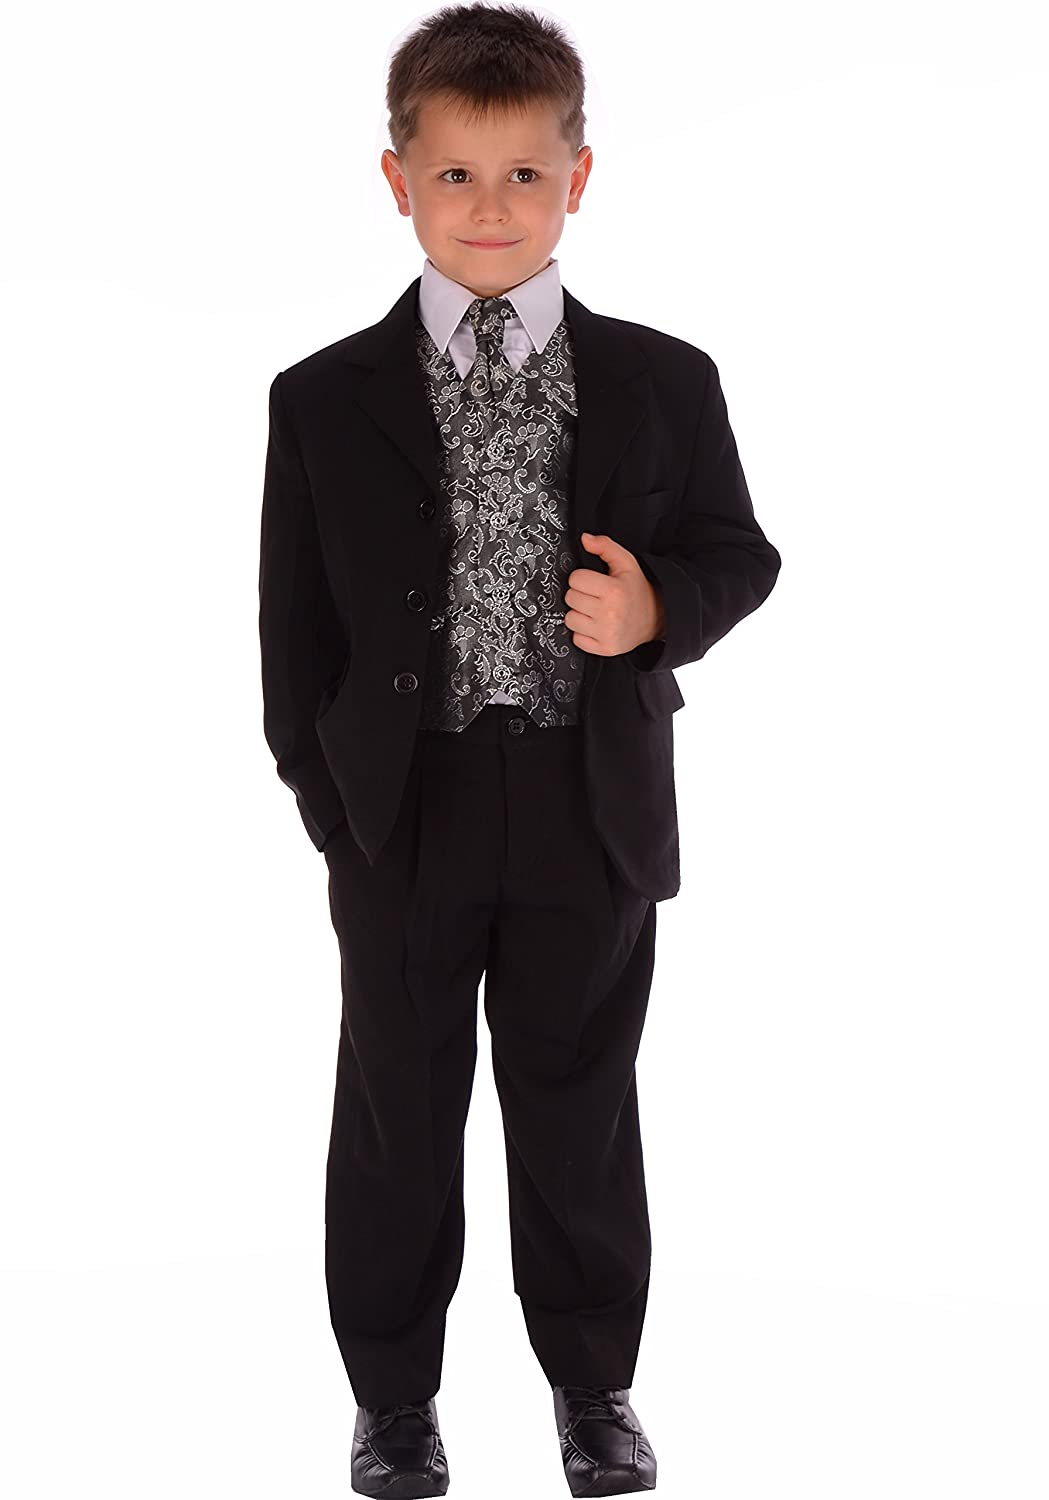 Boys Suit Black & Silver Paisley Formal Wedding Pageboy 5 Piece Suit 0-3 month to 14-15 years